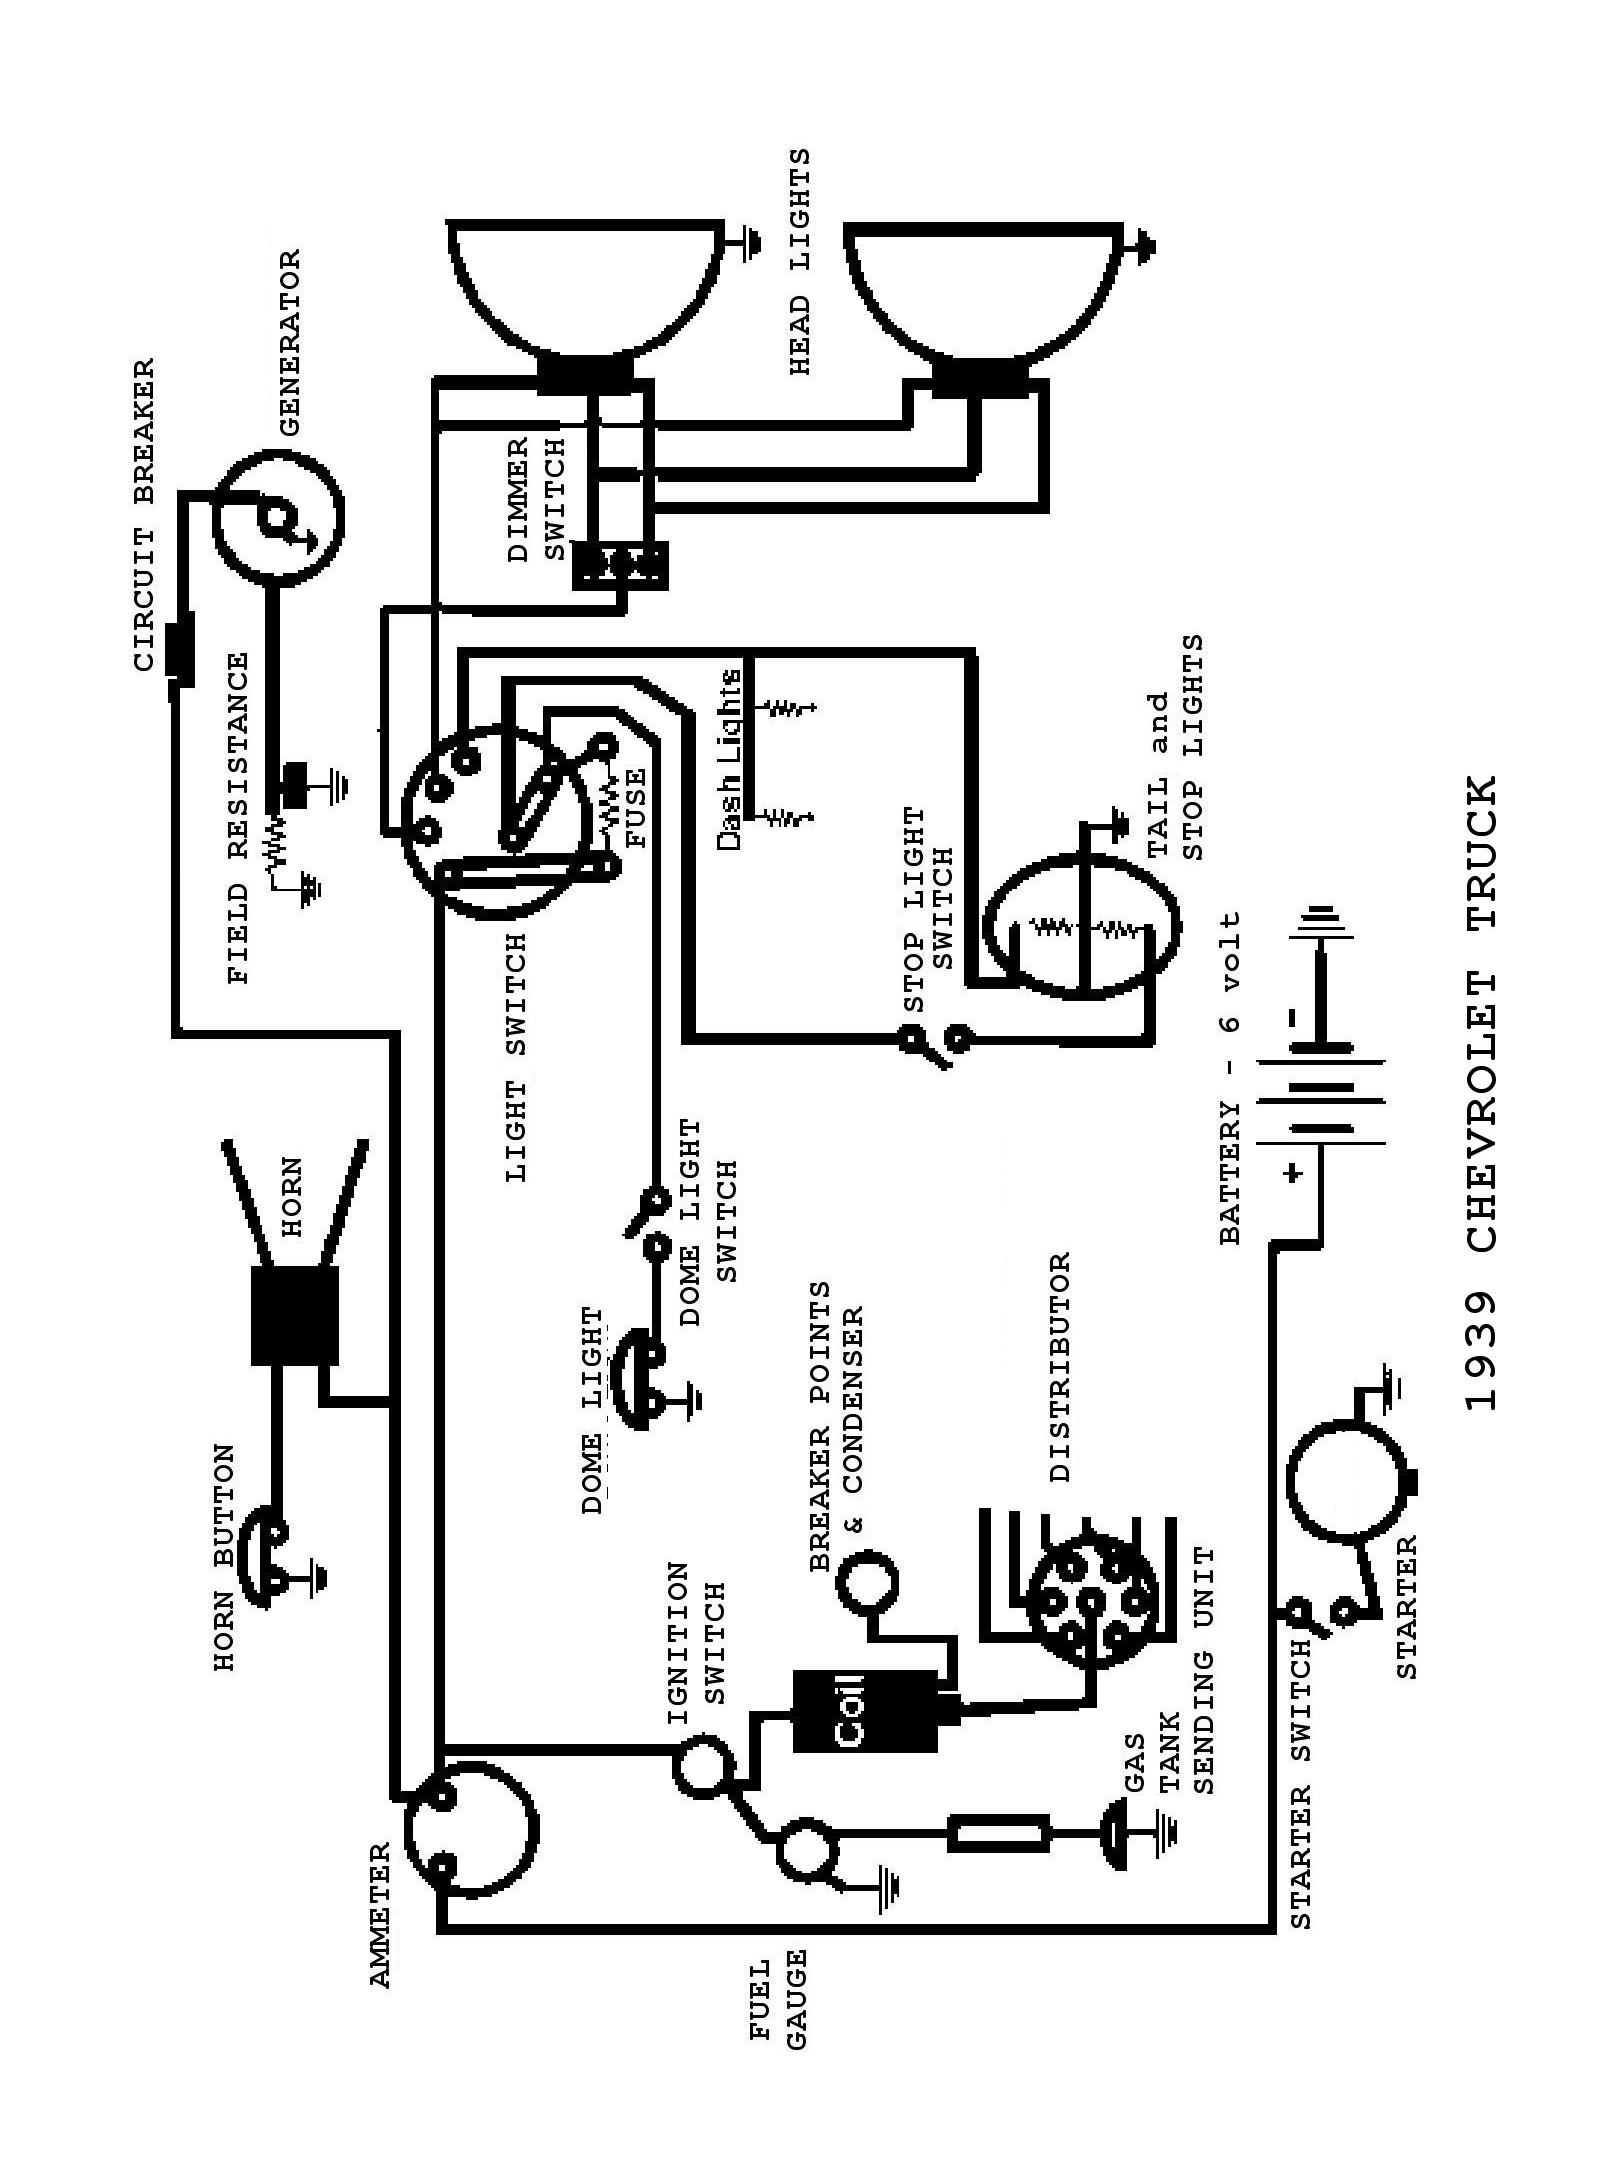 39truck 1931 chevrolet wiring diagram wiring diagram simonand 66 Chevy Headlight Switch Wiring Diagram at pacquiaovsvargaslive.co